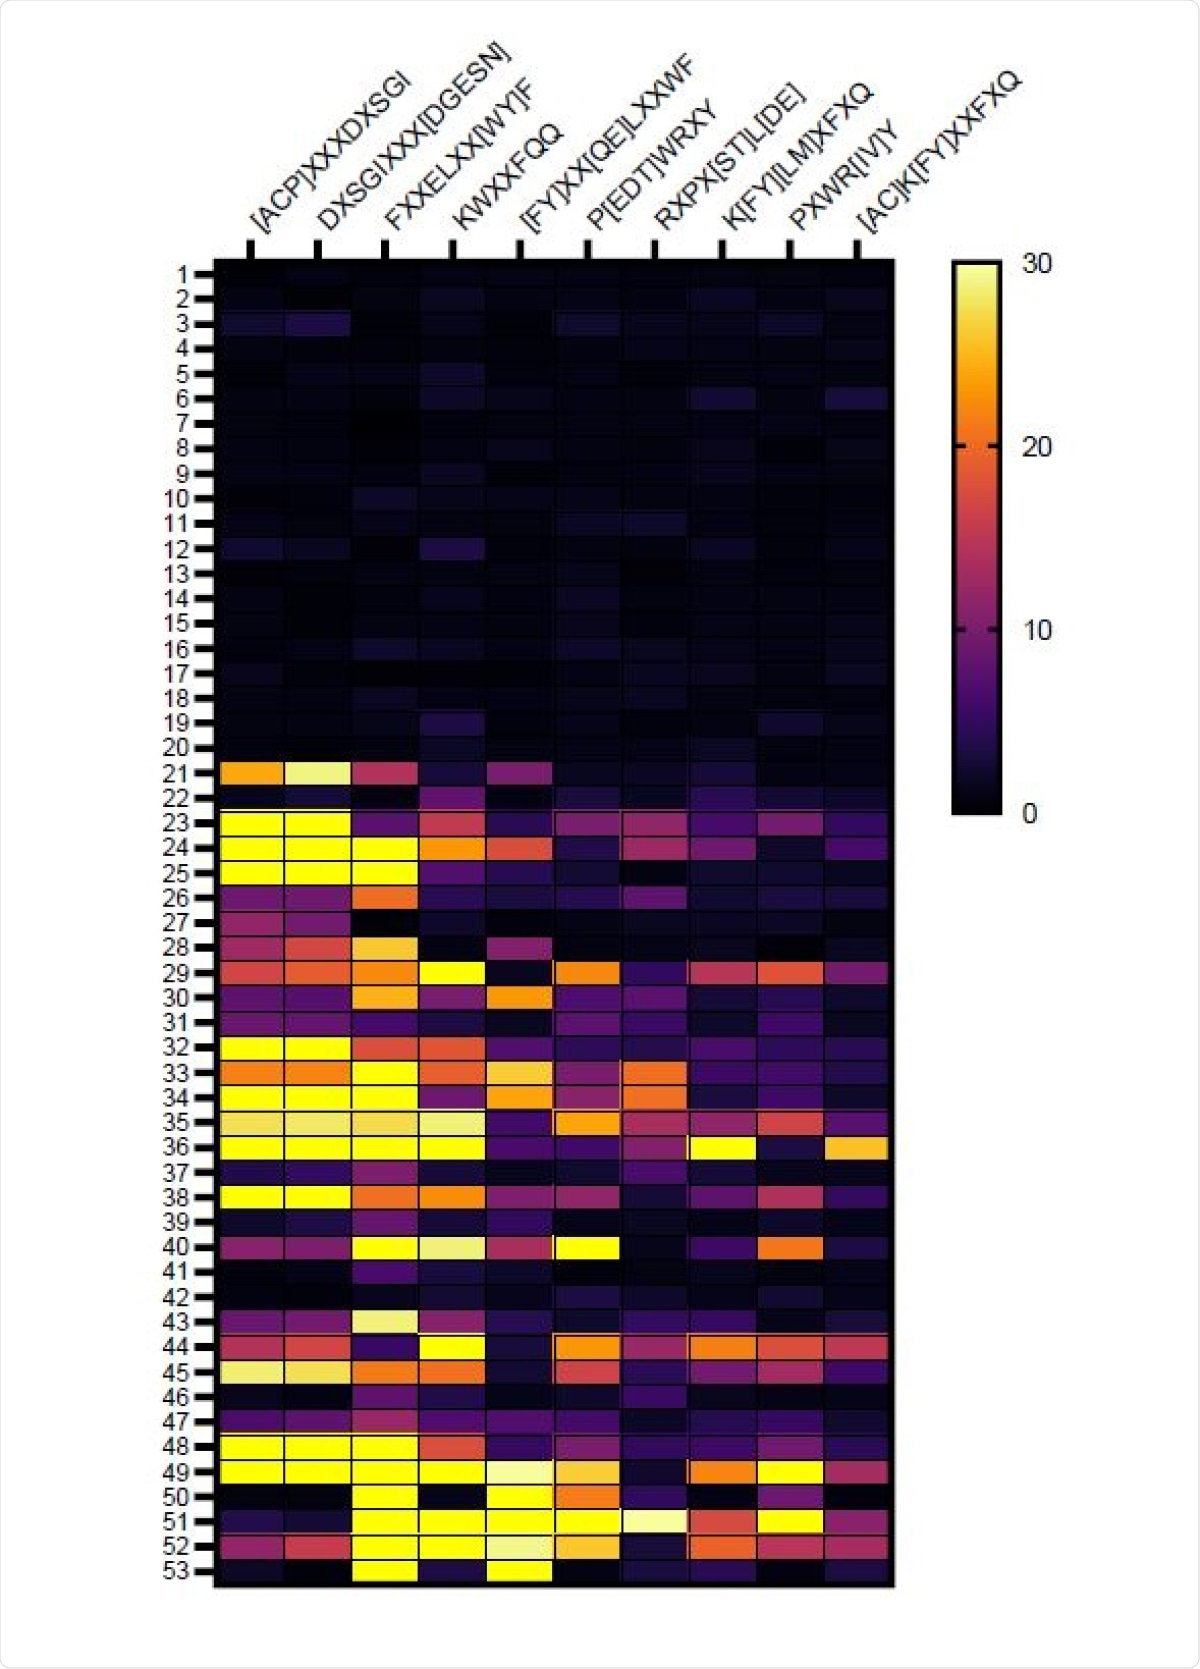 Heat map identifying amino acid motifs preferentially recognized by IgG from vaccinated subjects. Amino acid motifs were identified among the peptides immunoprecipitated by IgG from vaccine recipients using IMUNE algorithm and the level of enrichment (fold increase) in serum of individual subjects relative to pre-pandemic control subjects is depicted in the heat map. Samples 1-20 are pre-vaccine and samples 21-40 are the same subjects after Pfizer-BioNTech COVID-19 mRNA vaccination. Subjects 41-48 are from subjects that received Moderna vaccine. Samples 49-53 are vaccinated subjects that previously had COVID-19.